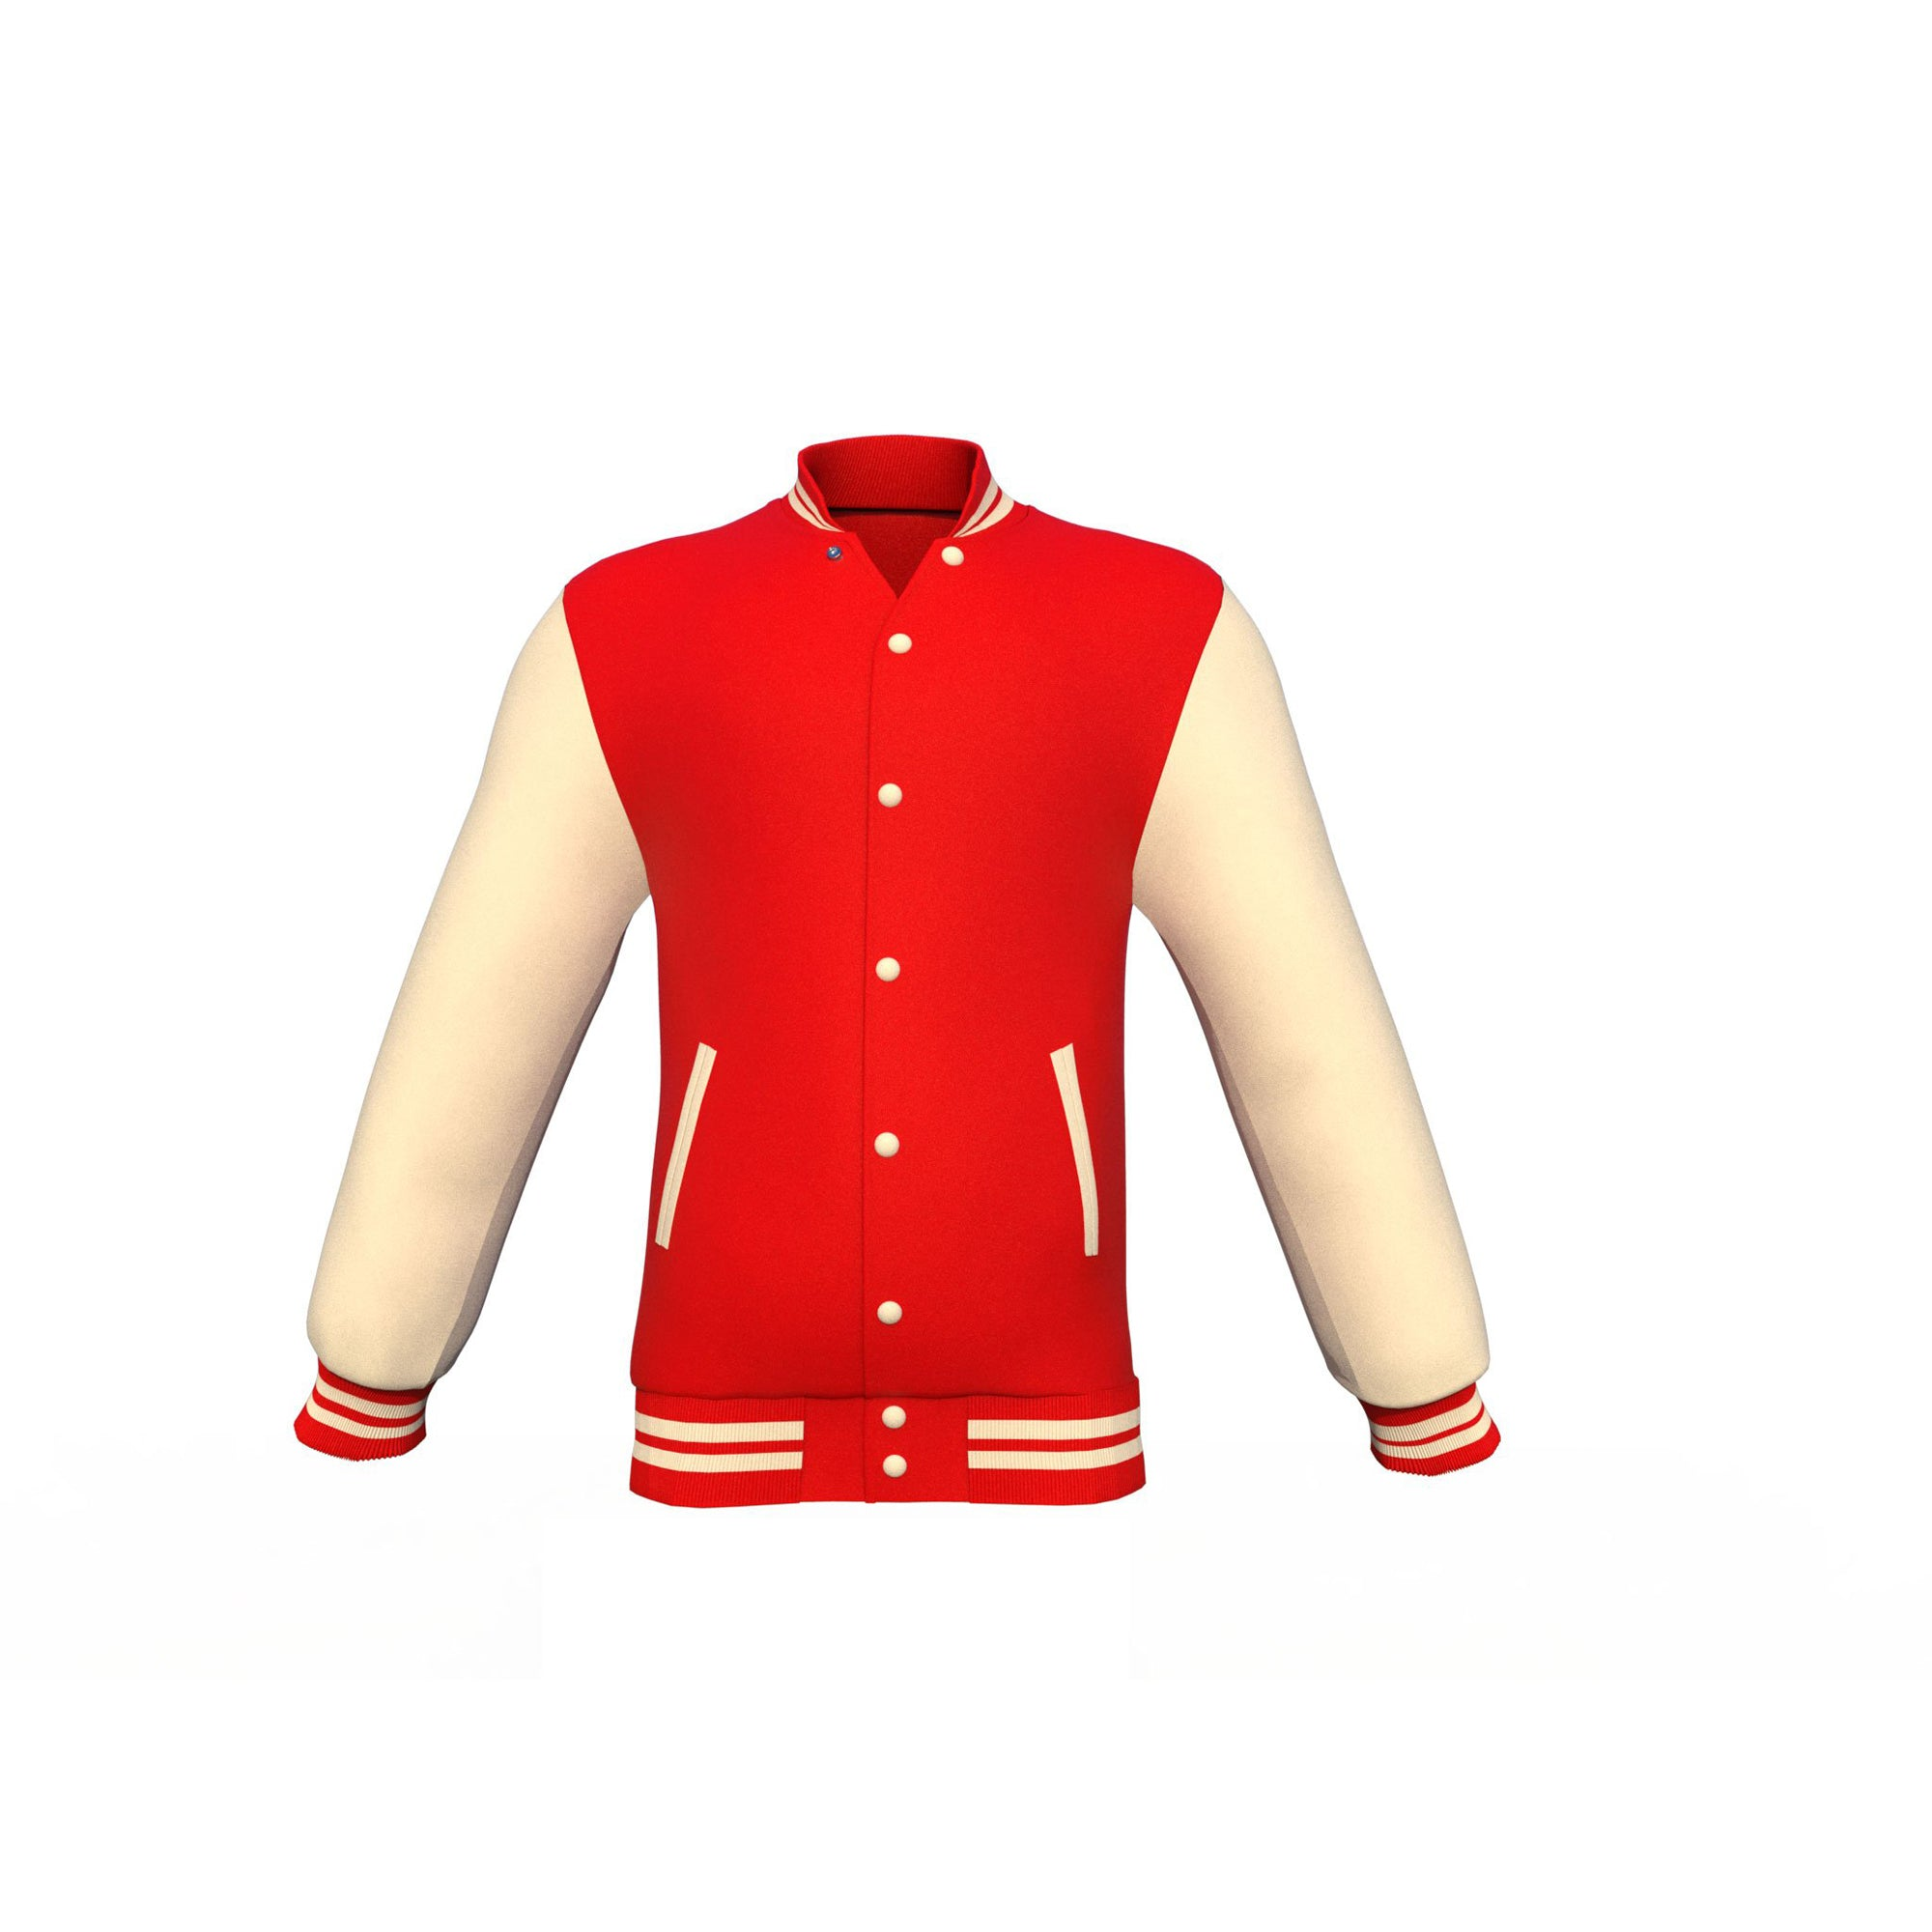 Red Varsity Letterman Jacket with Cream Sleeves